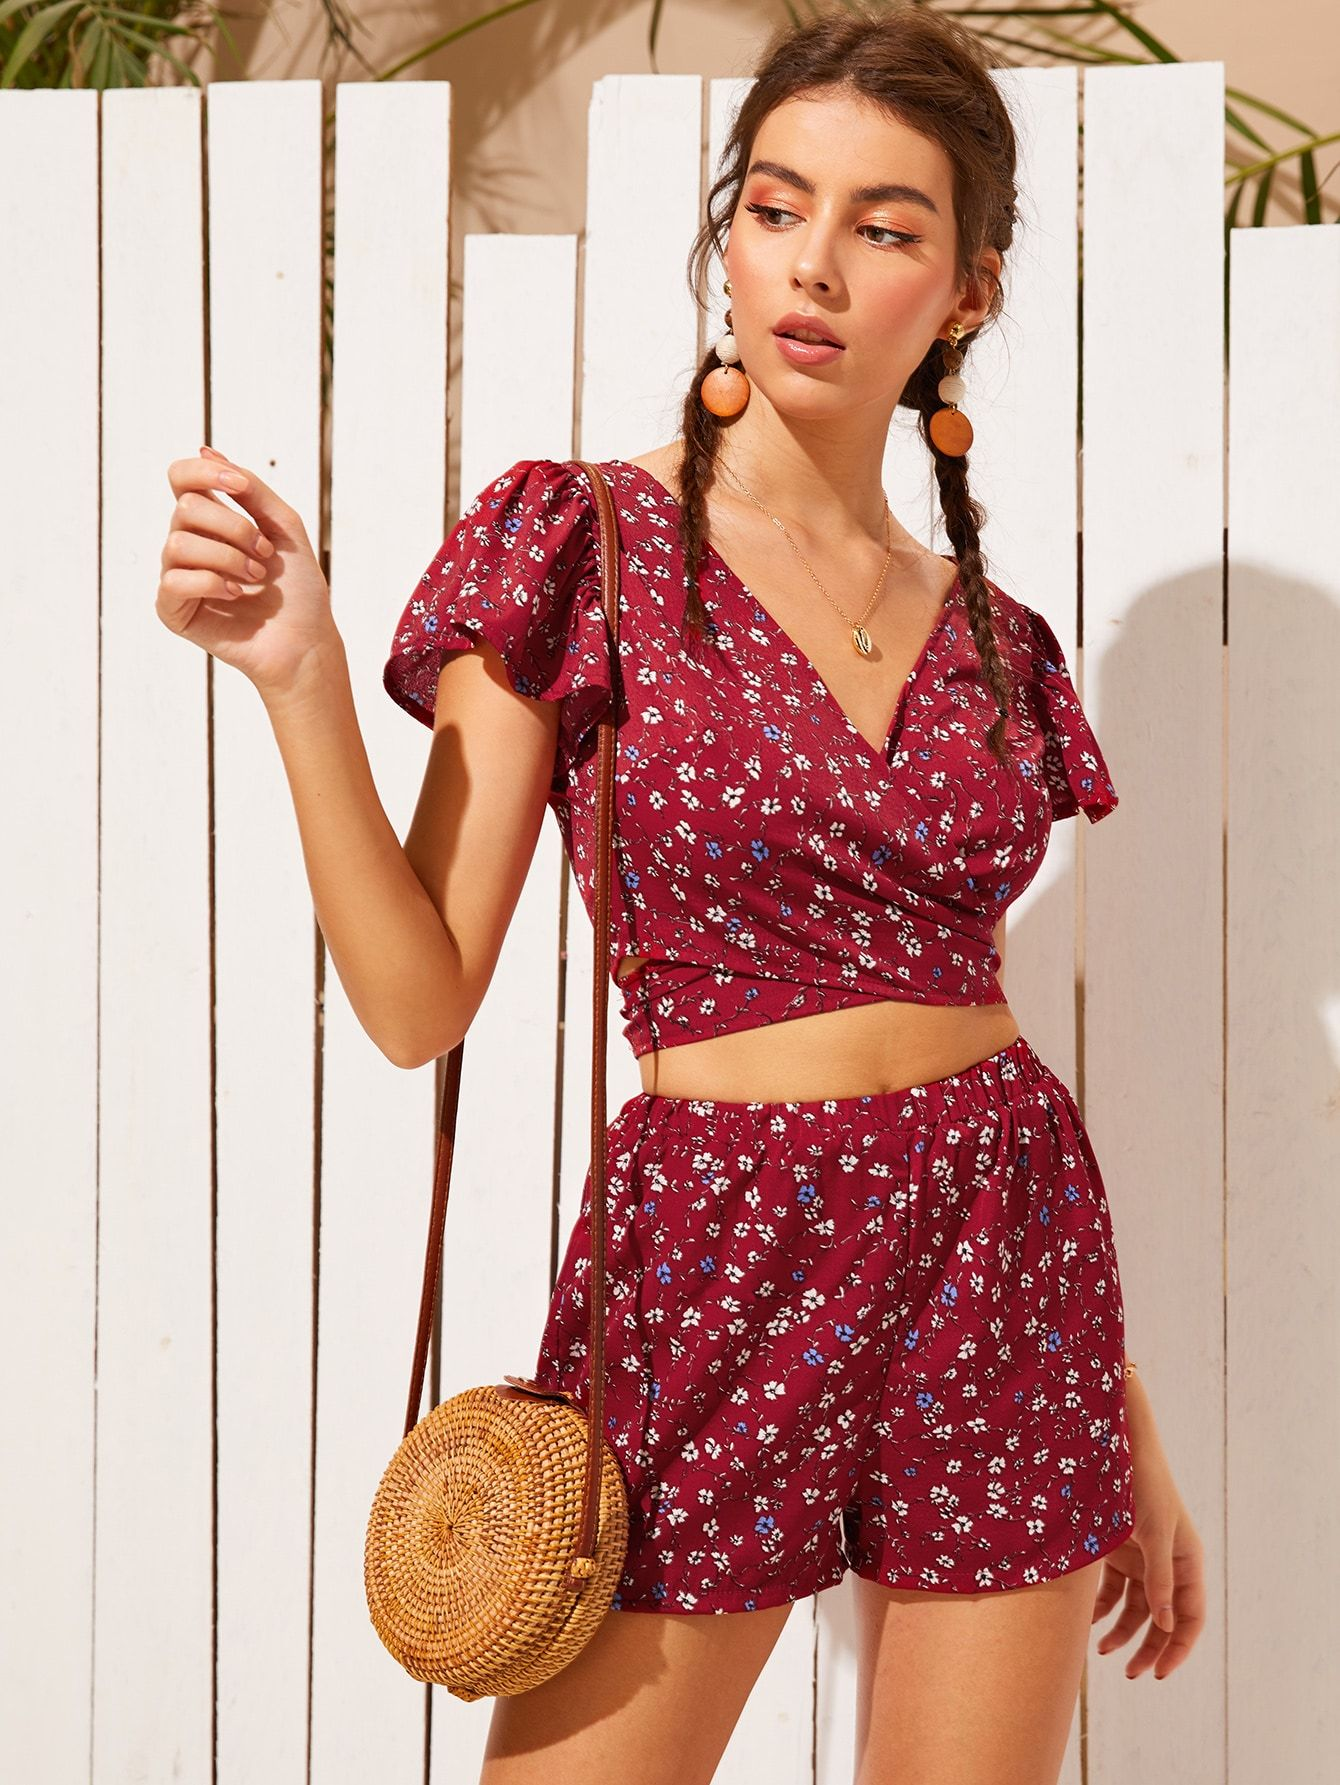 Floerns Womens One Shoulder Print Top /& Cycling Shorts Set Two Pieces Outfit